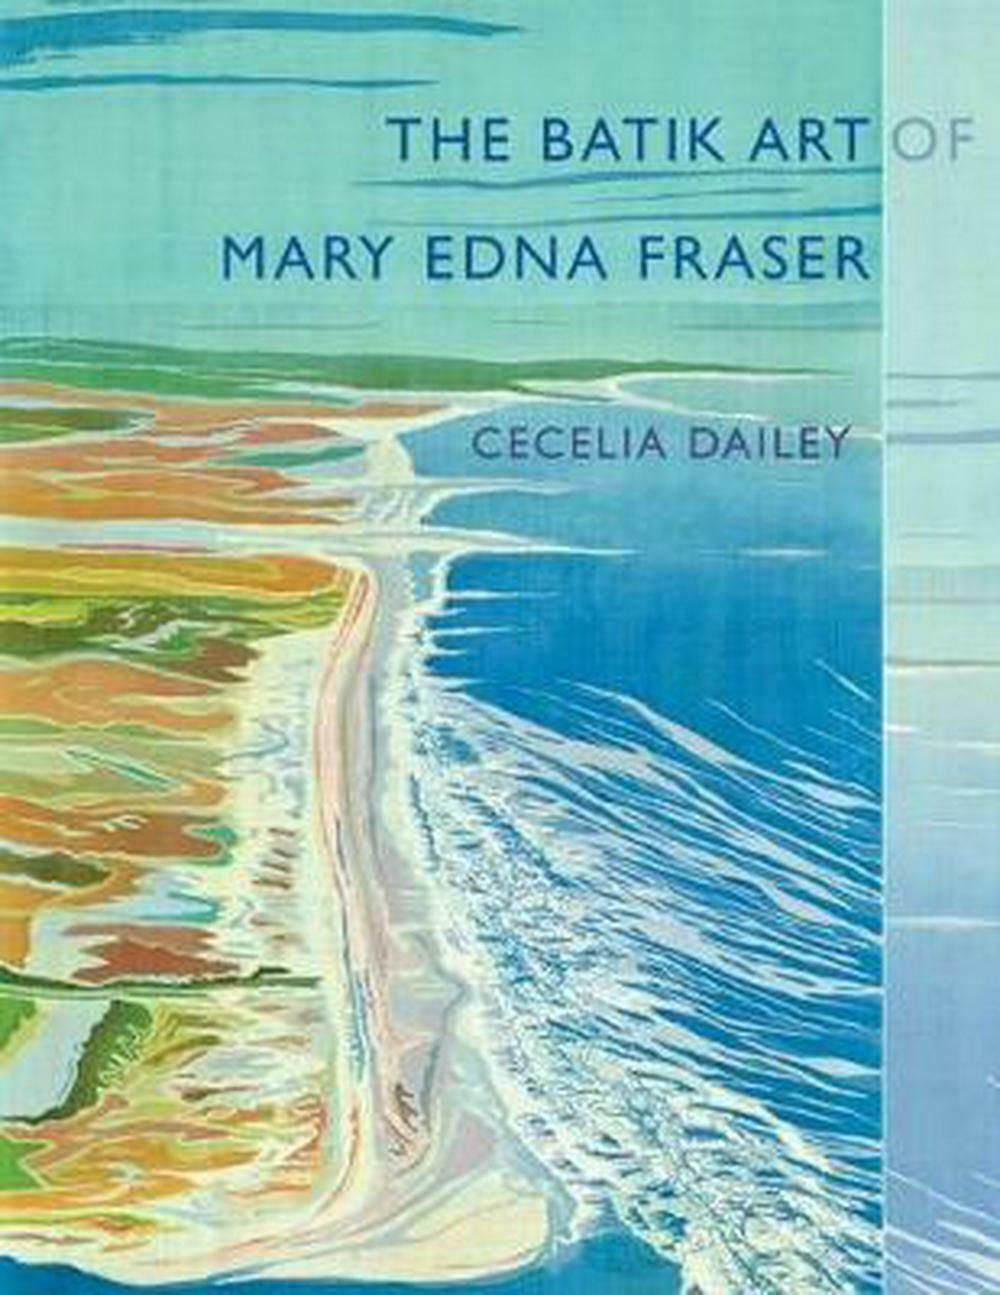 'The Batik Art of Mary Edna Fraser' by Cecelia Dailey